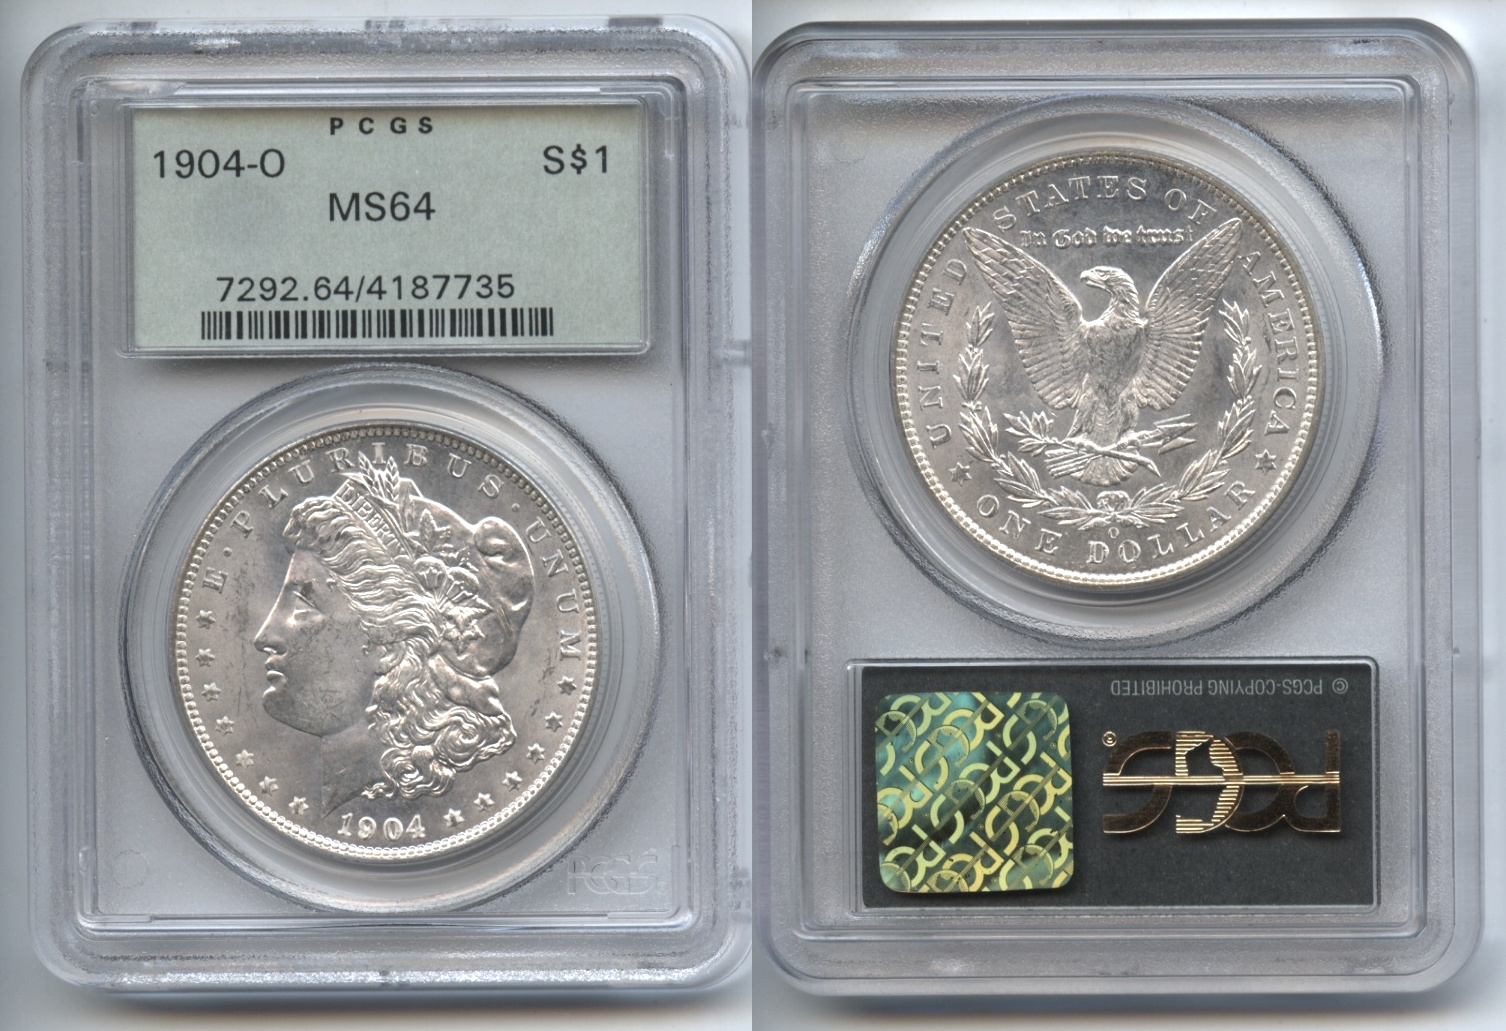 1904-O Morgan Silver Dollar PCGS MS-64 VAM-21 Doubled 0 and Profile, High O